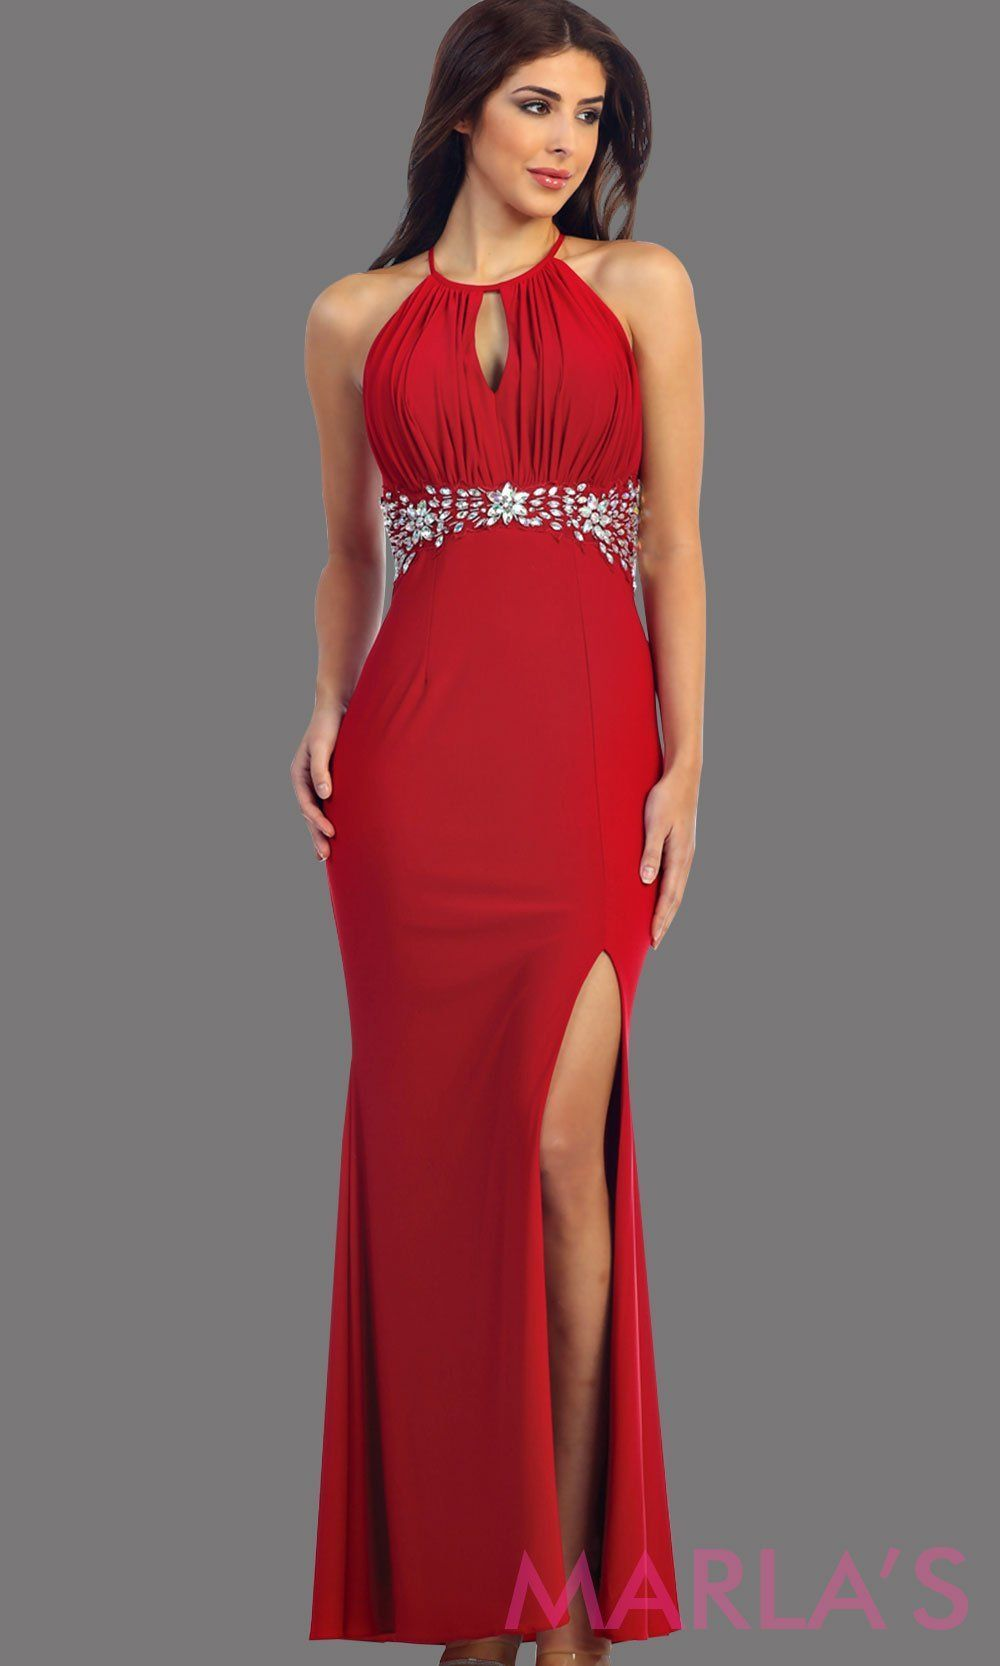 6210c71887b Long red fitted dress with high slit. This is a perfect sleek and sexy red prom  dress, wedding guest dress, and long party dress.